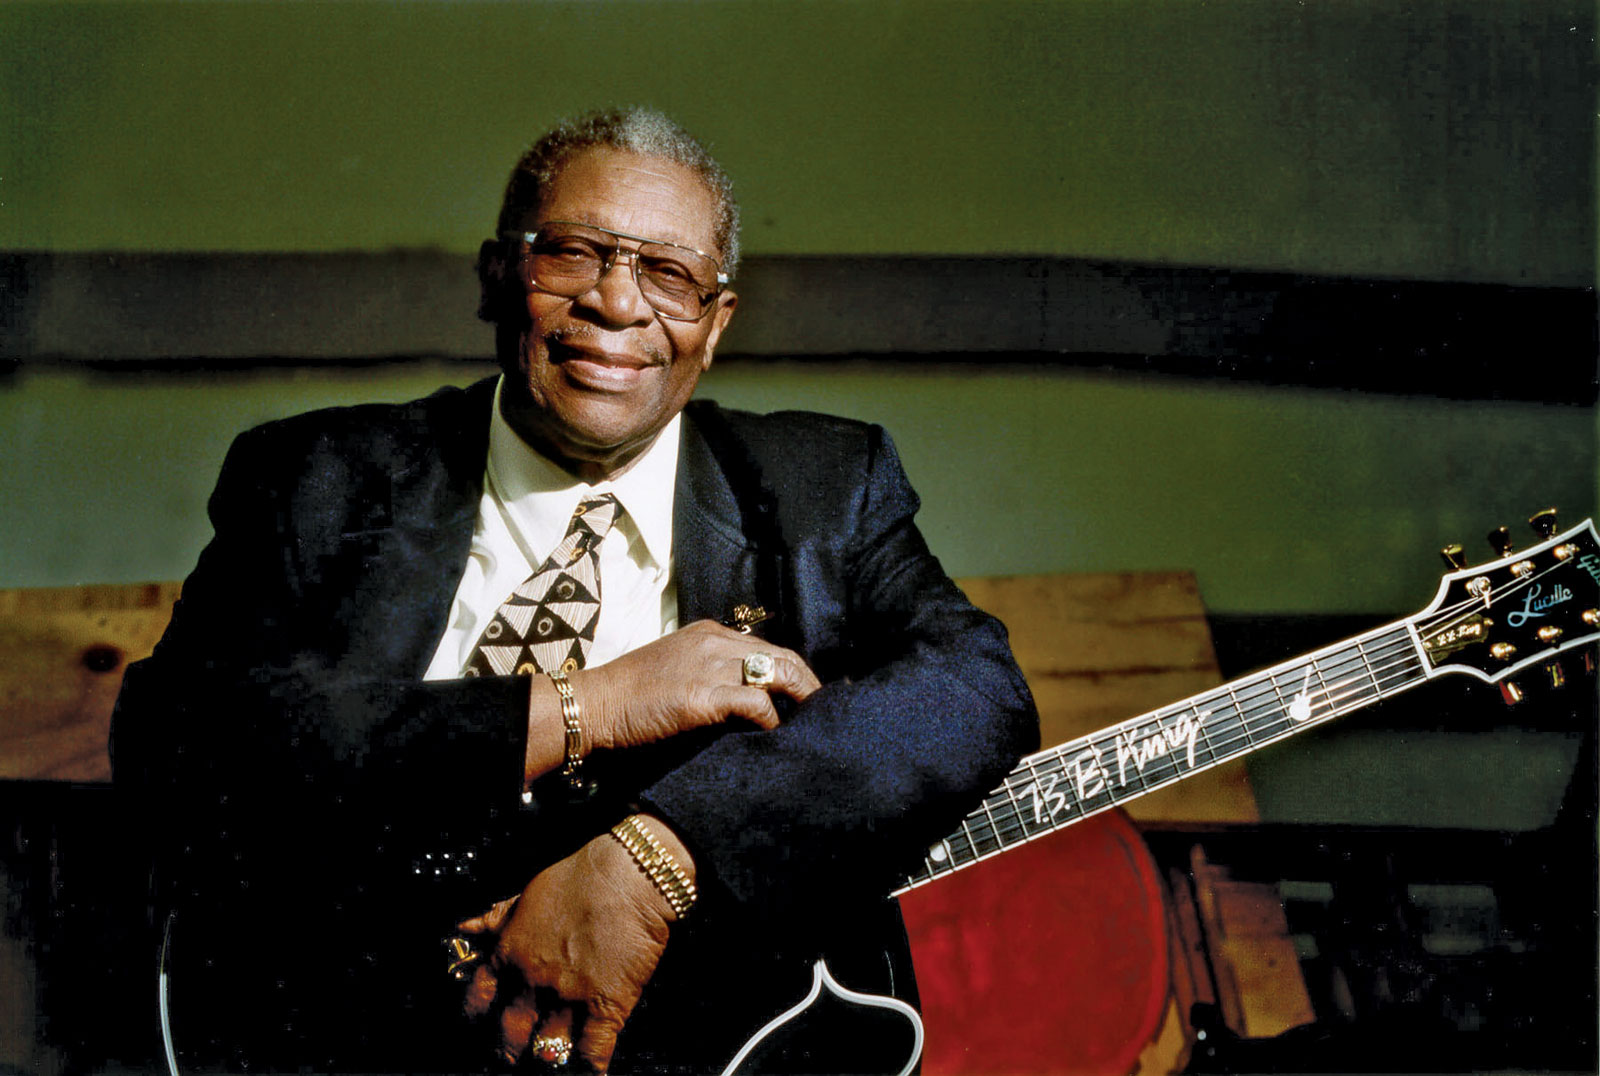 https://www.britannica.com/biography/B-B-King